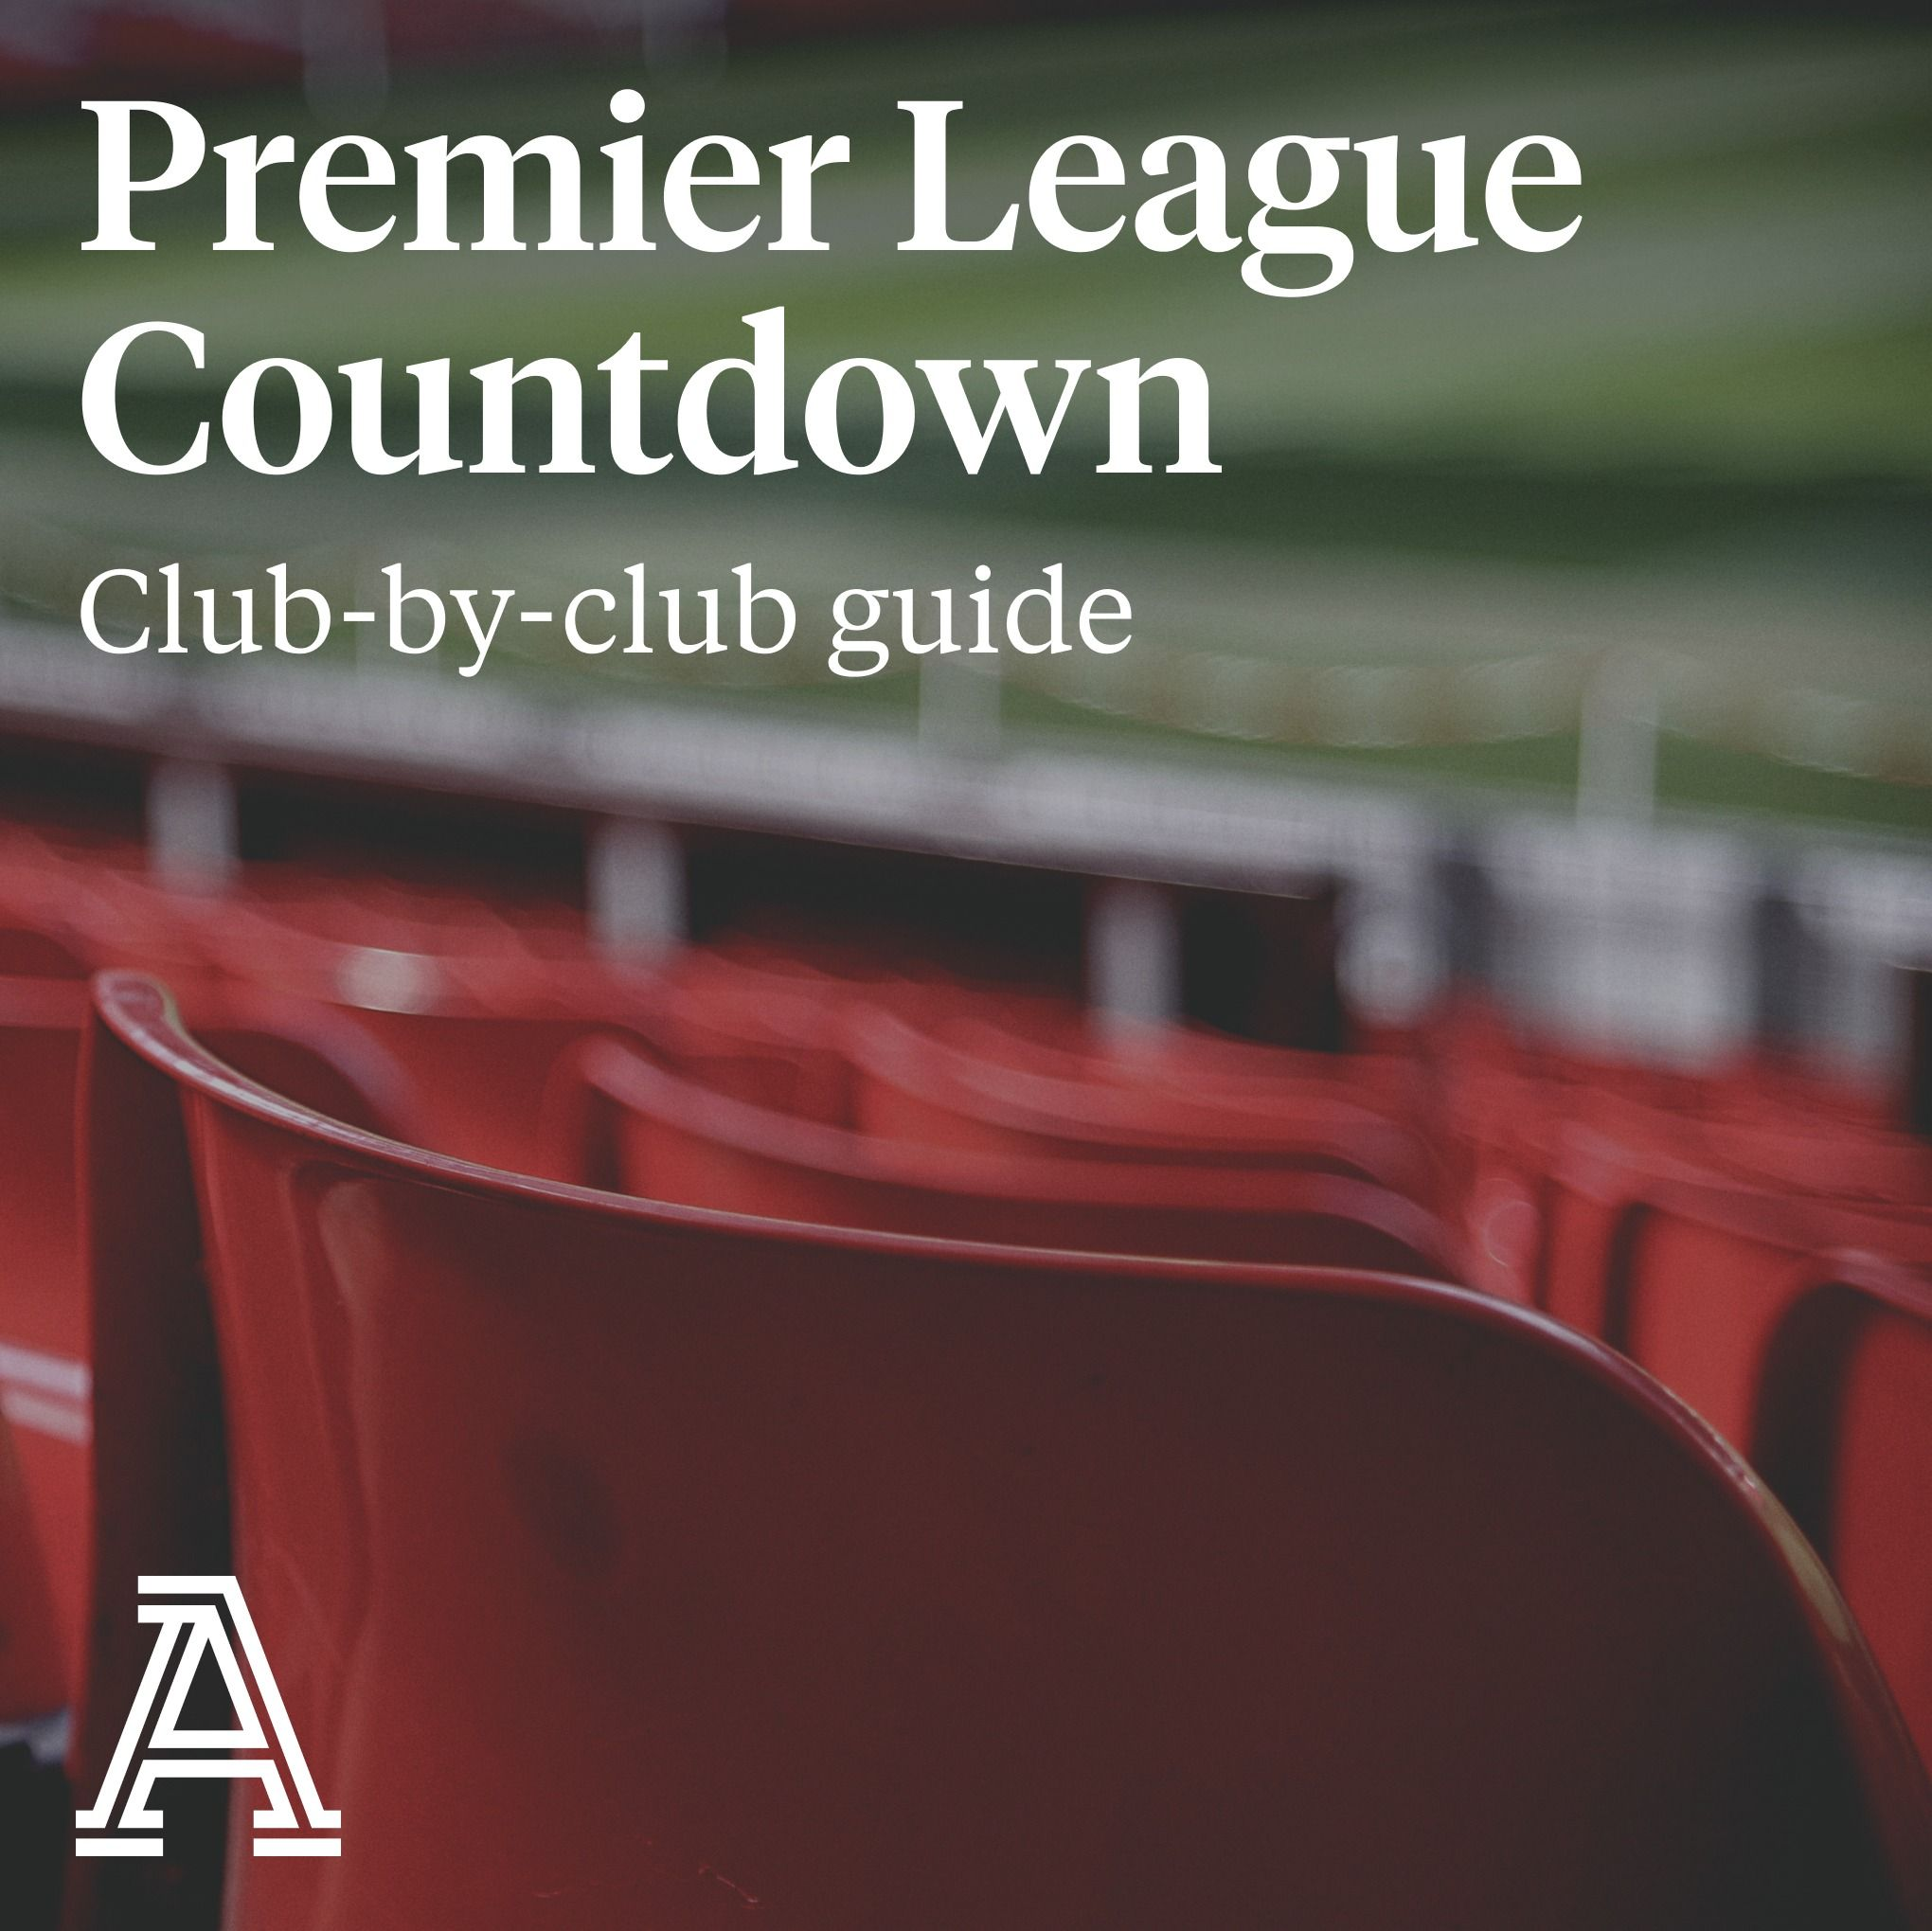 Premier League Countdown - Leicester City